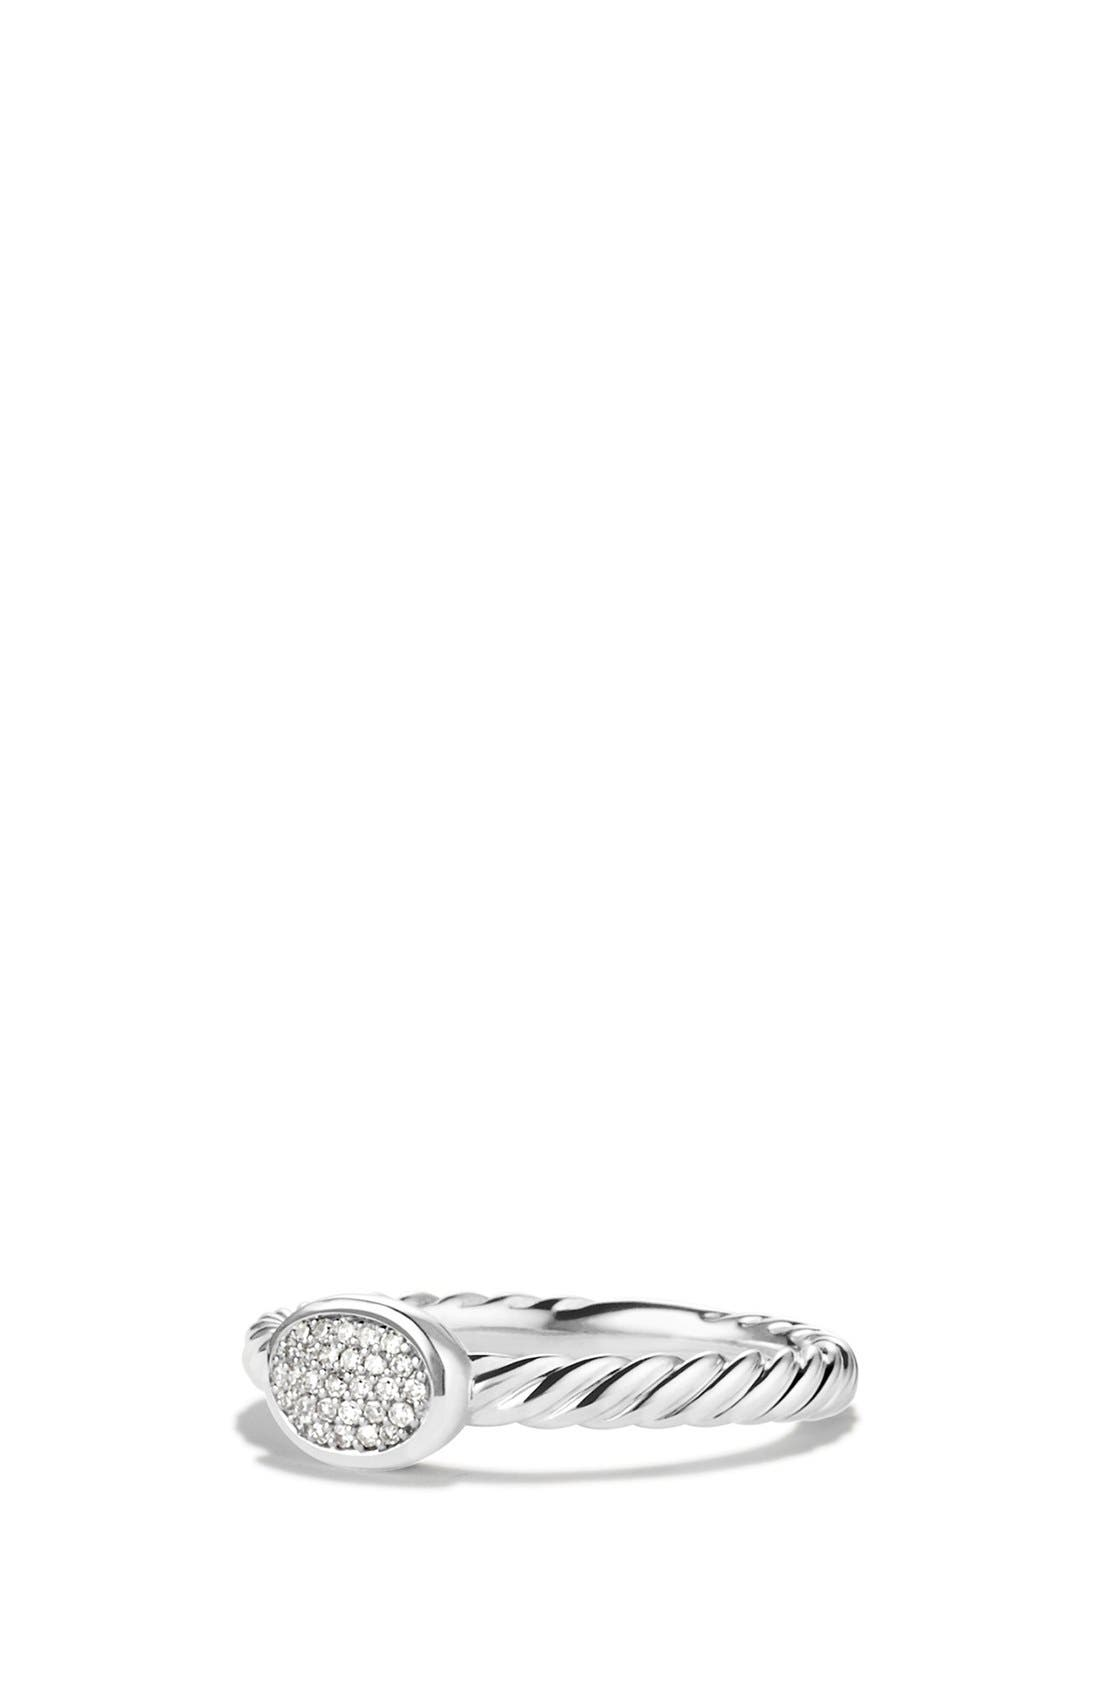 'Cable Collectibles' Oval Ring with Diamonds,                             Main thumbnail 1, color,                             DIAMOND